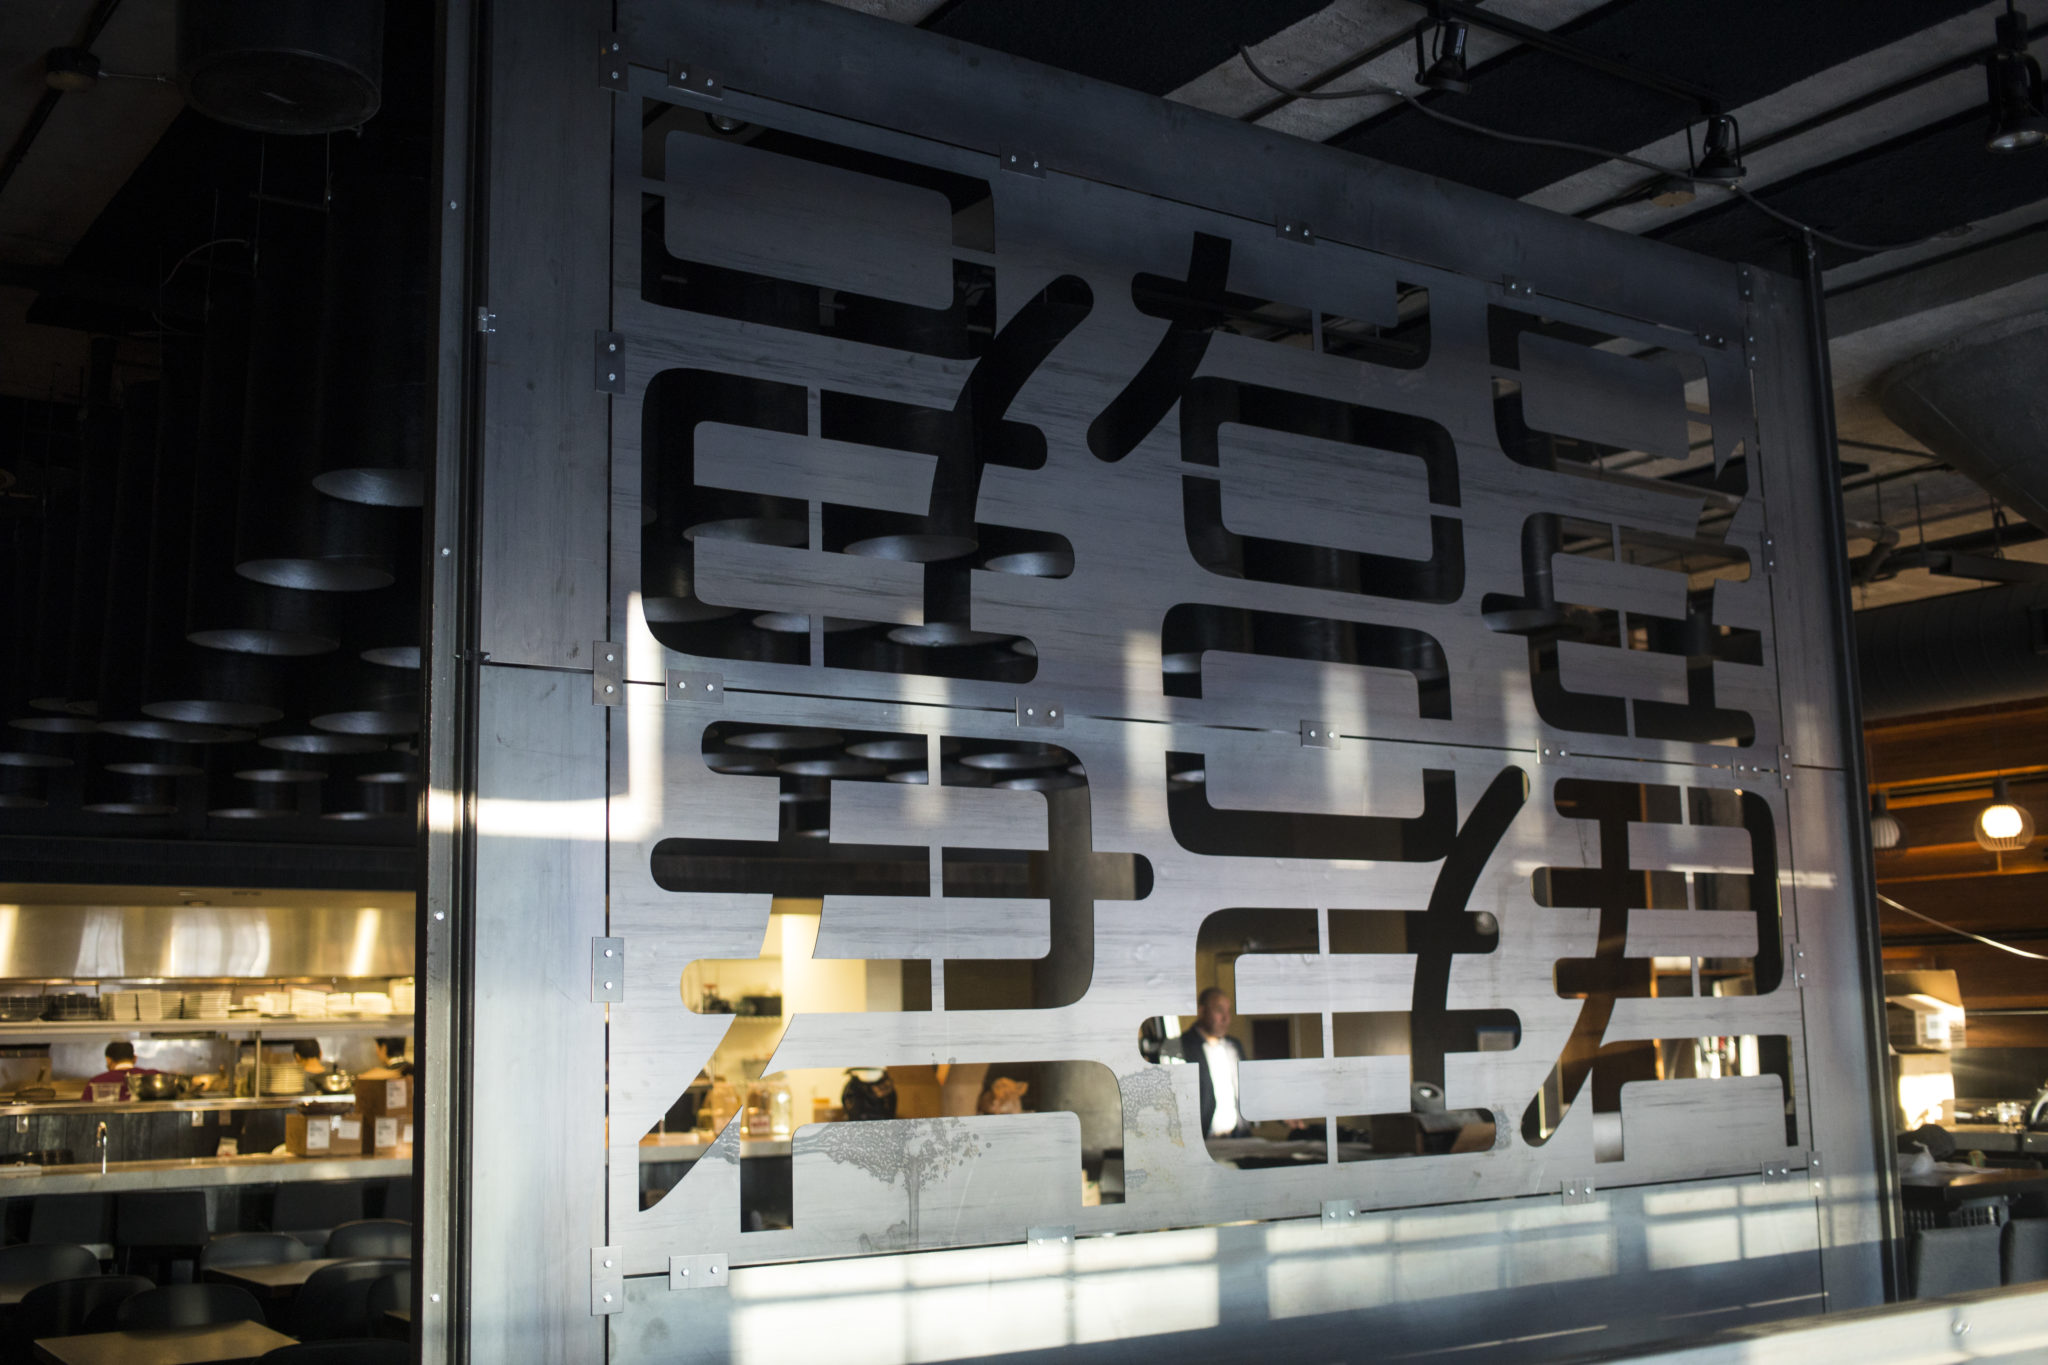 A glass wall with charachters etched onto it in the dining room at JUN